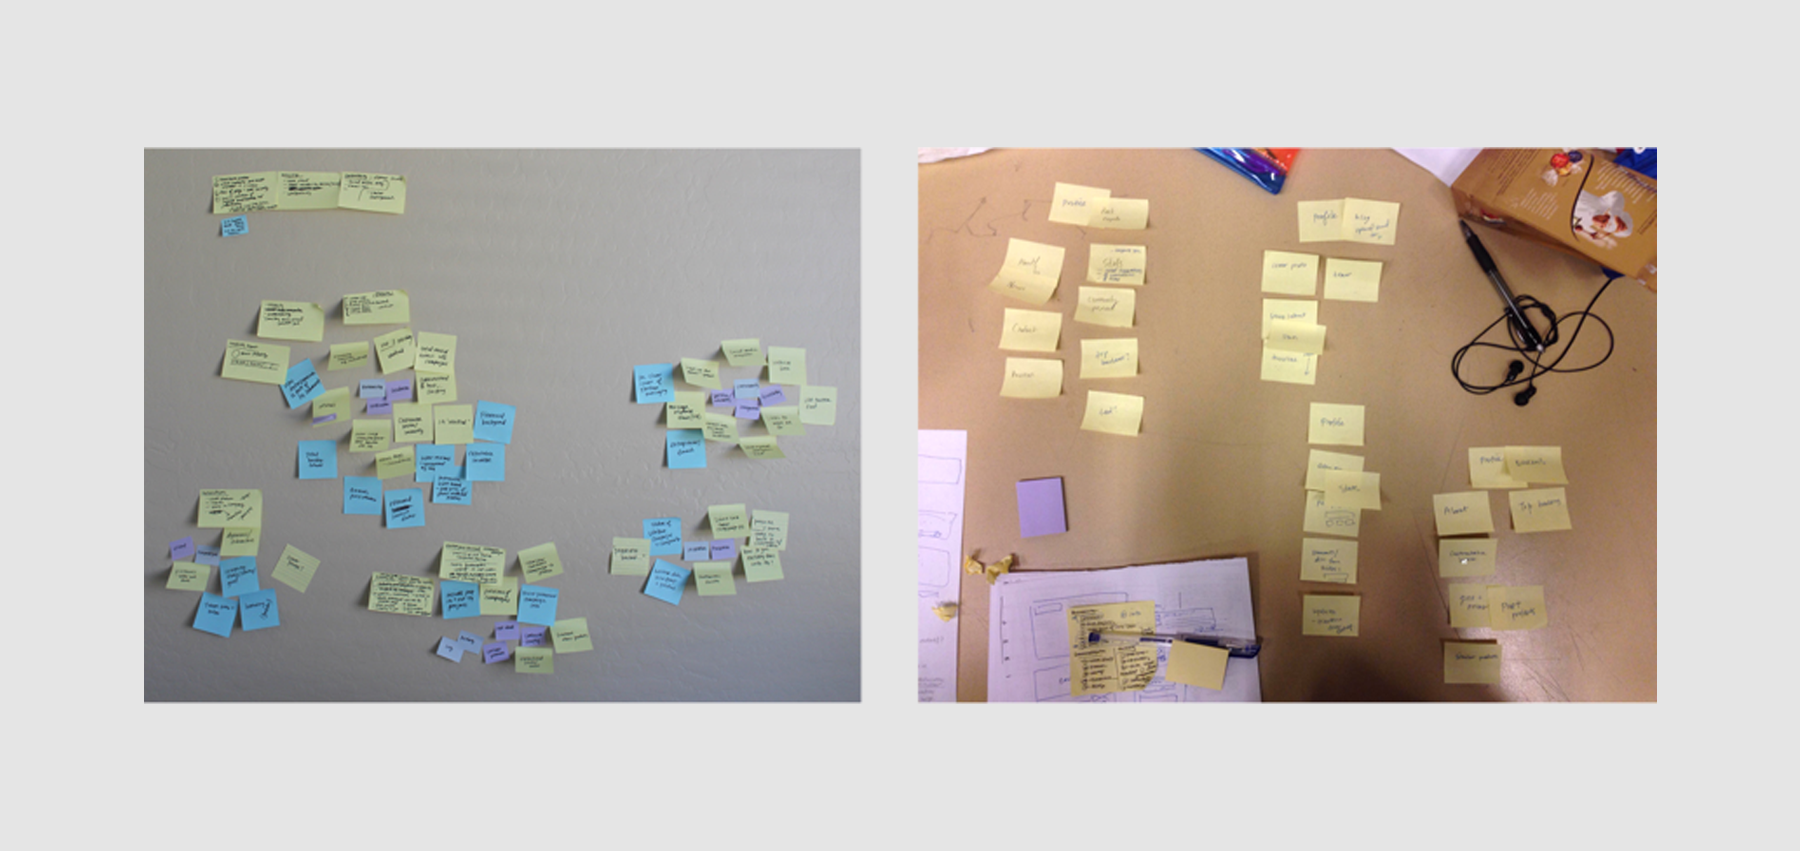 Affinity mapping our observations from user research